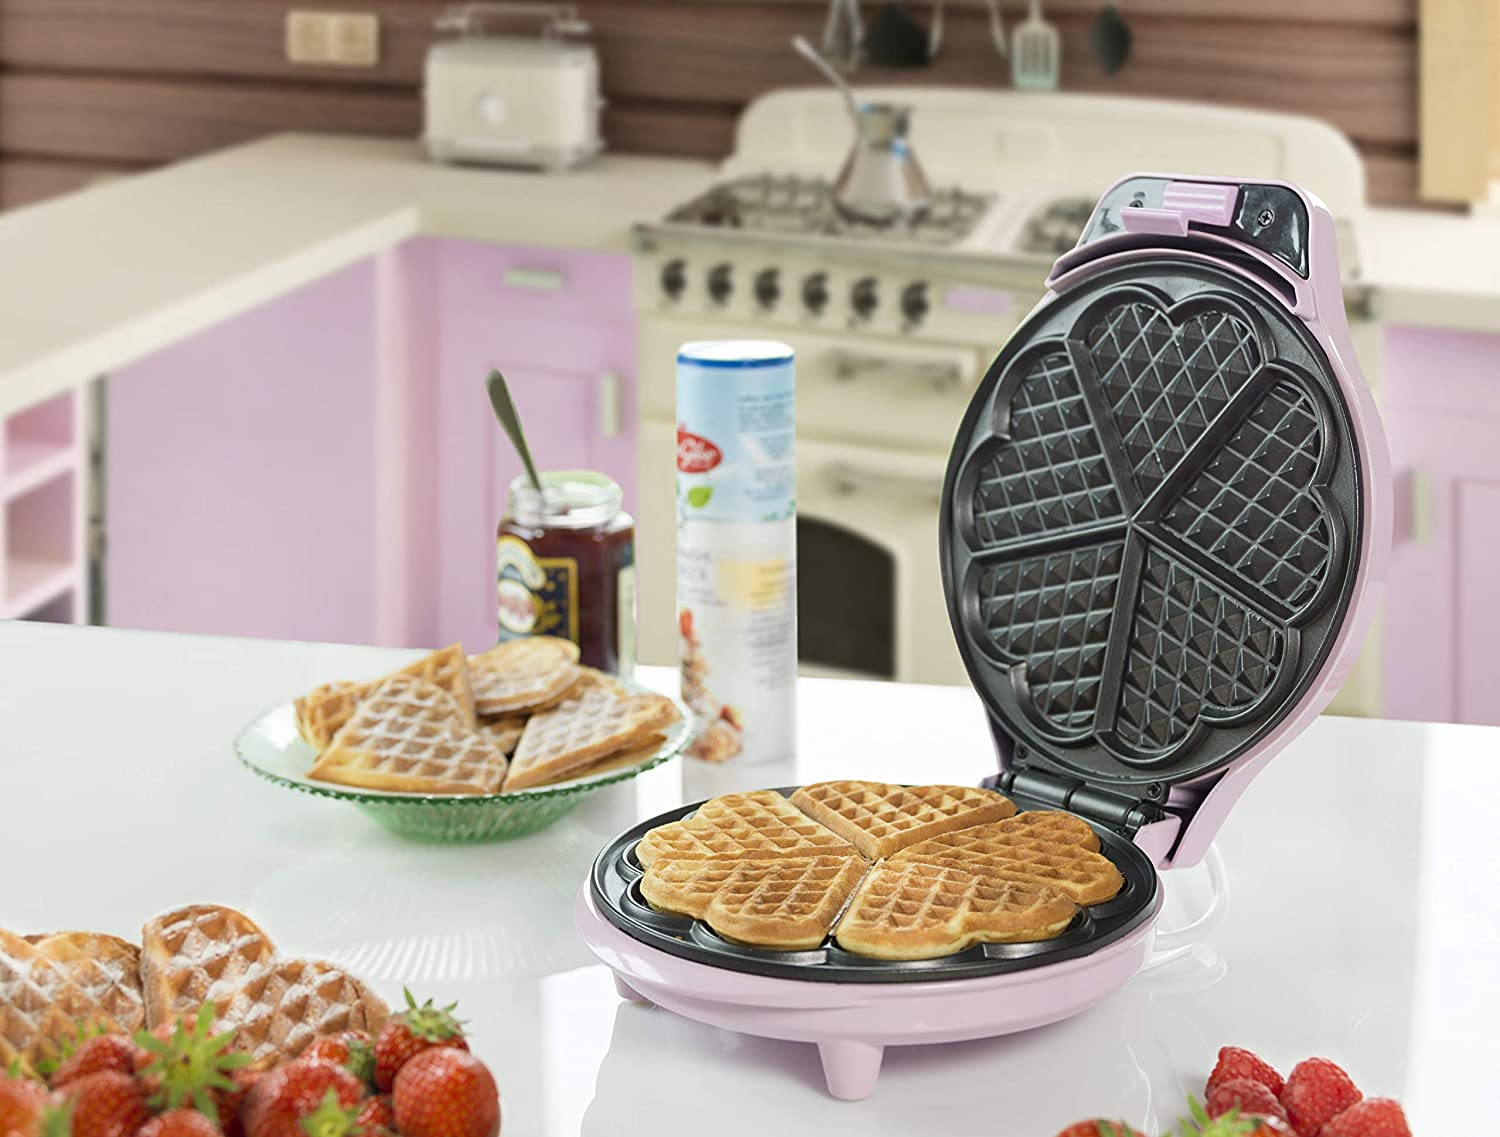 Bestron ASW217 6waffle 700W Rosa piastra per waffle